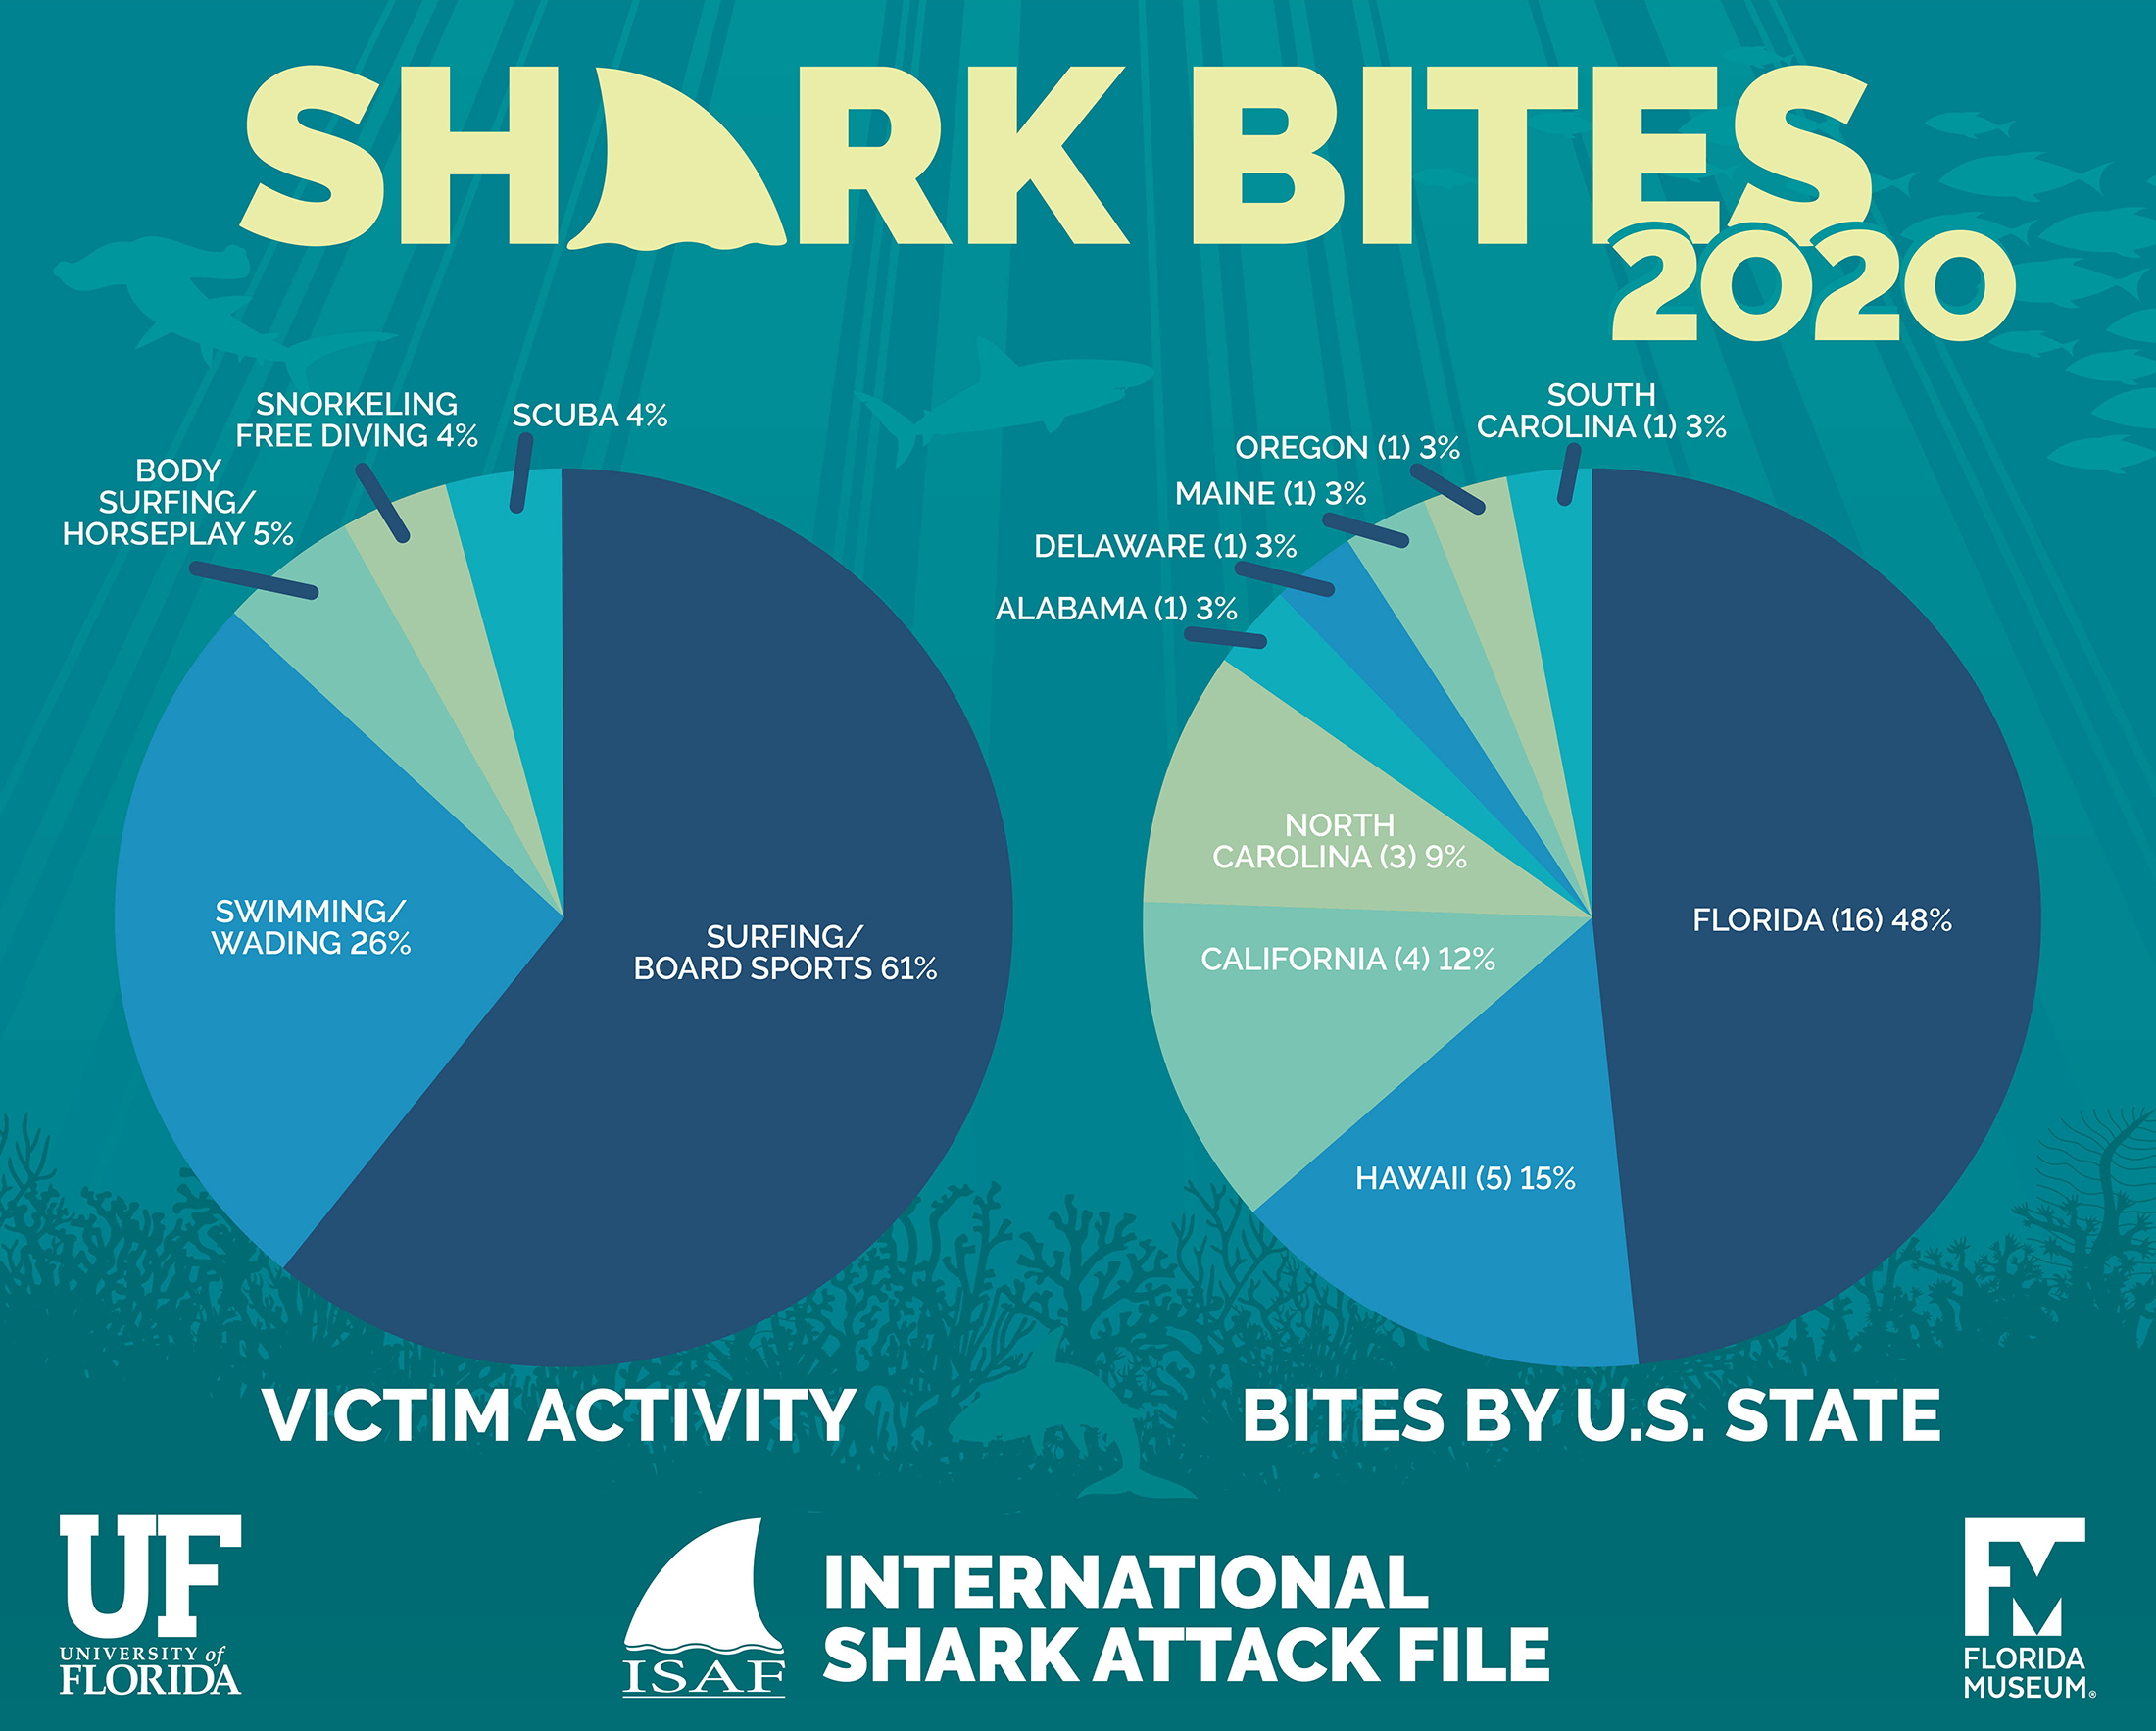 pie charts on bites by U.S. state and activity